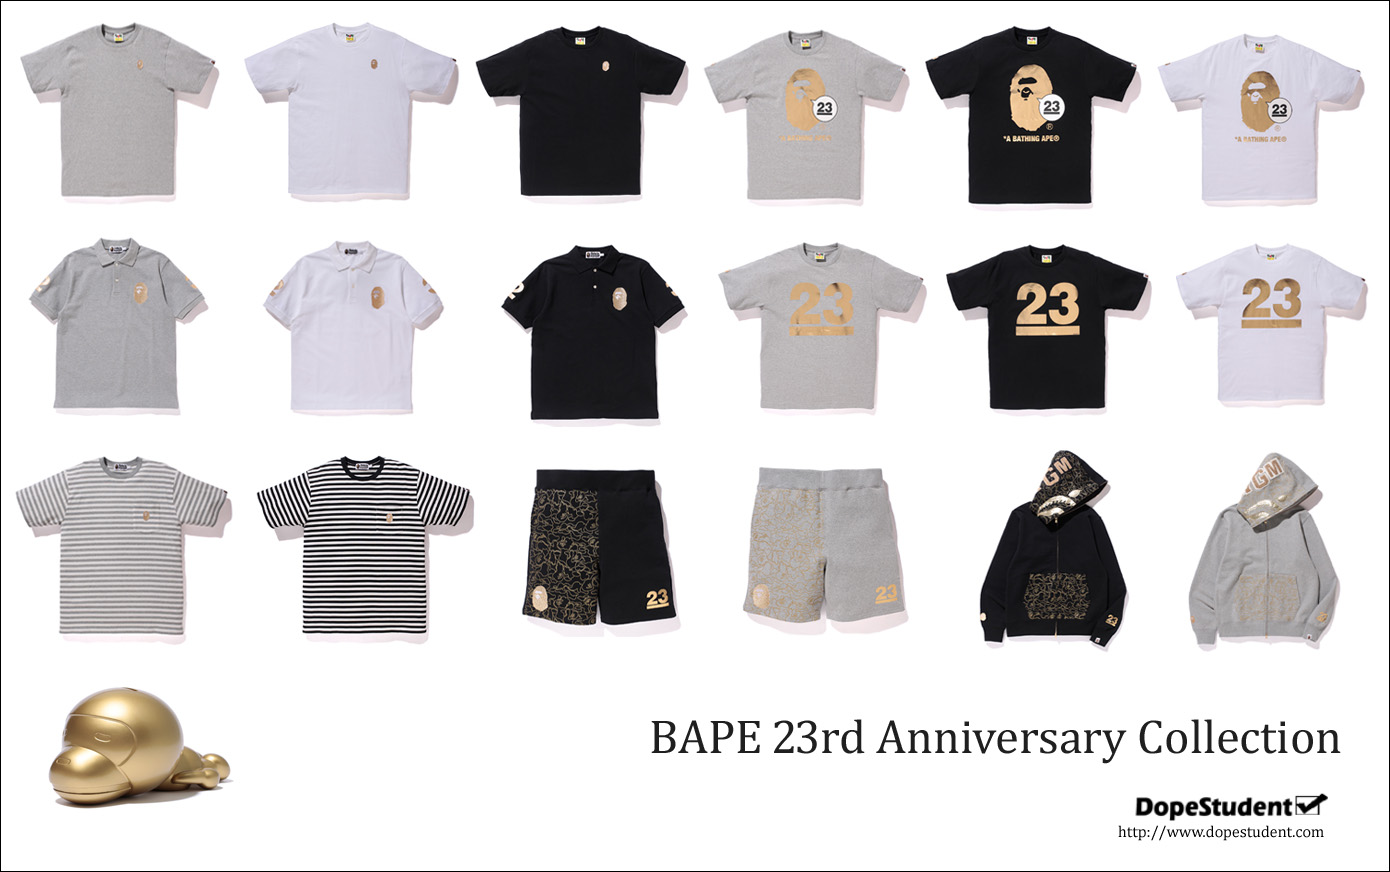 BAPE 23rd Anniversary Collection